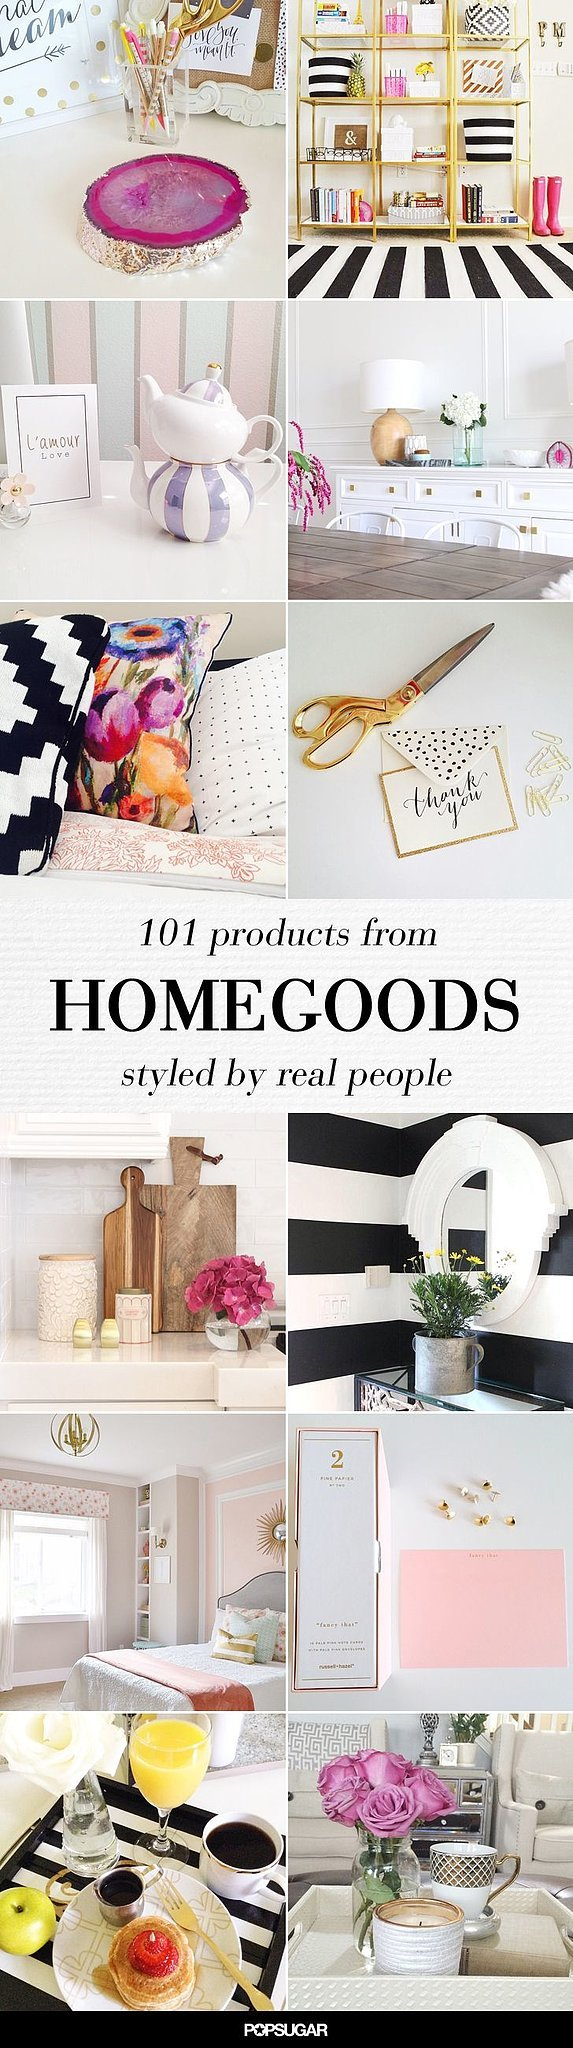 Amazing Homegoods Pieces 10 Home Decor Ideas You 39 Ll Want To Pin Immediately Popsugar Home: home decor home goods